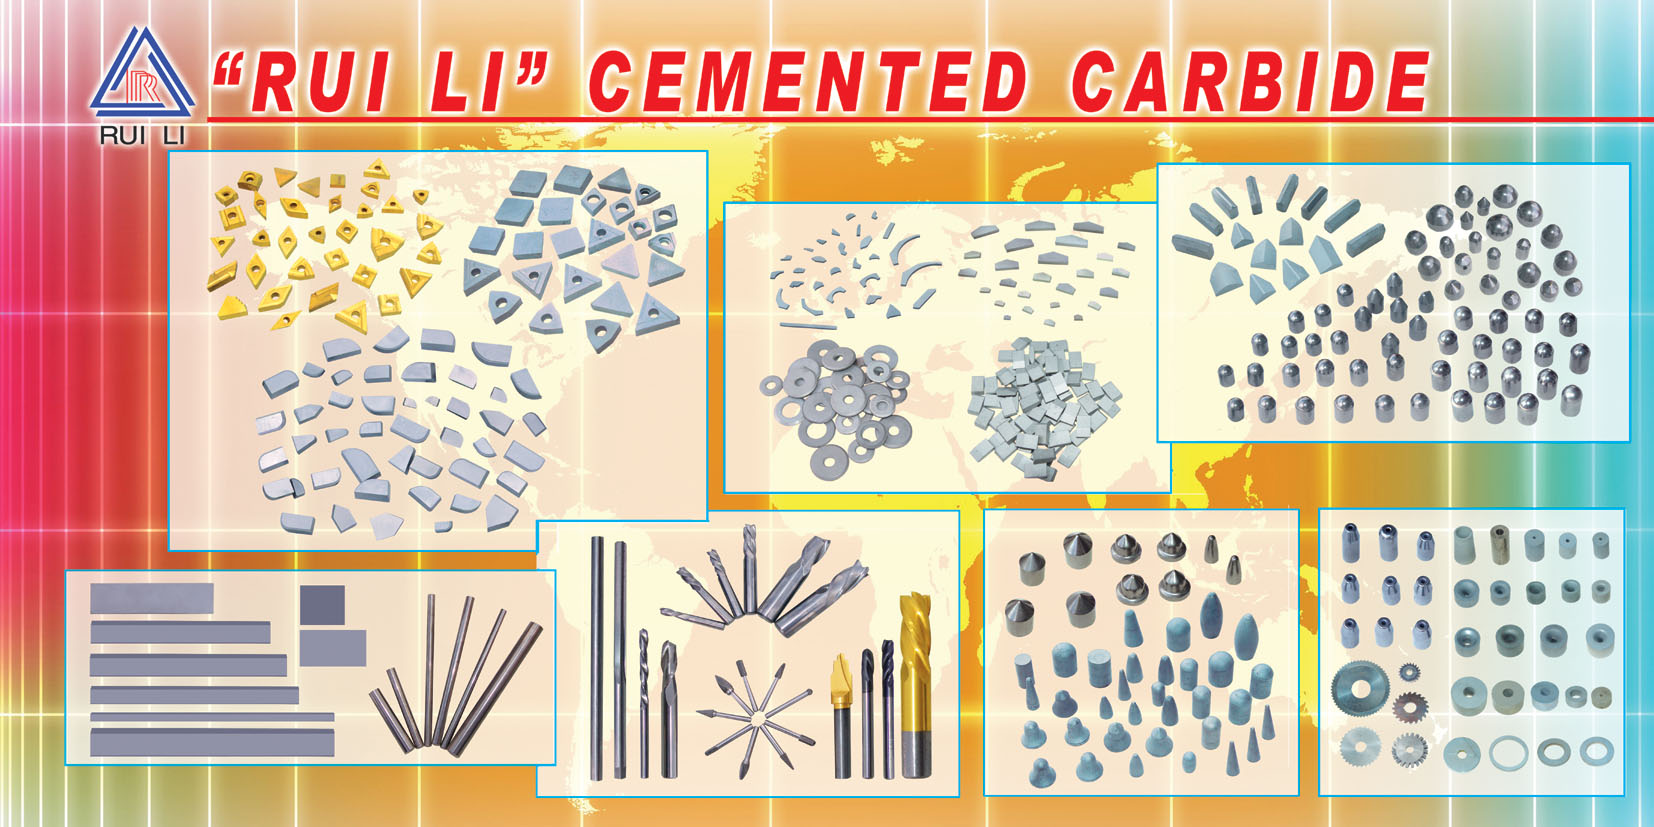 Zhejiang RUILI Cemented Carbide Co.,Ltd